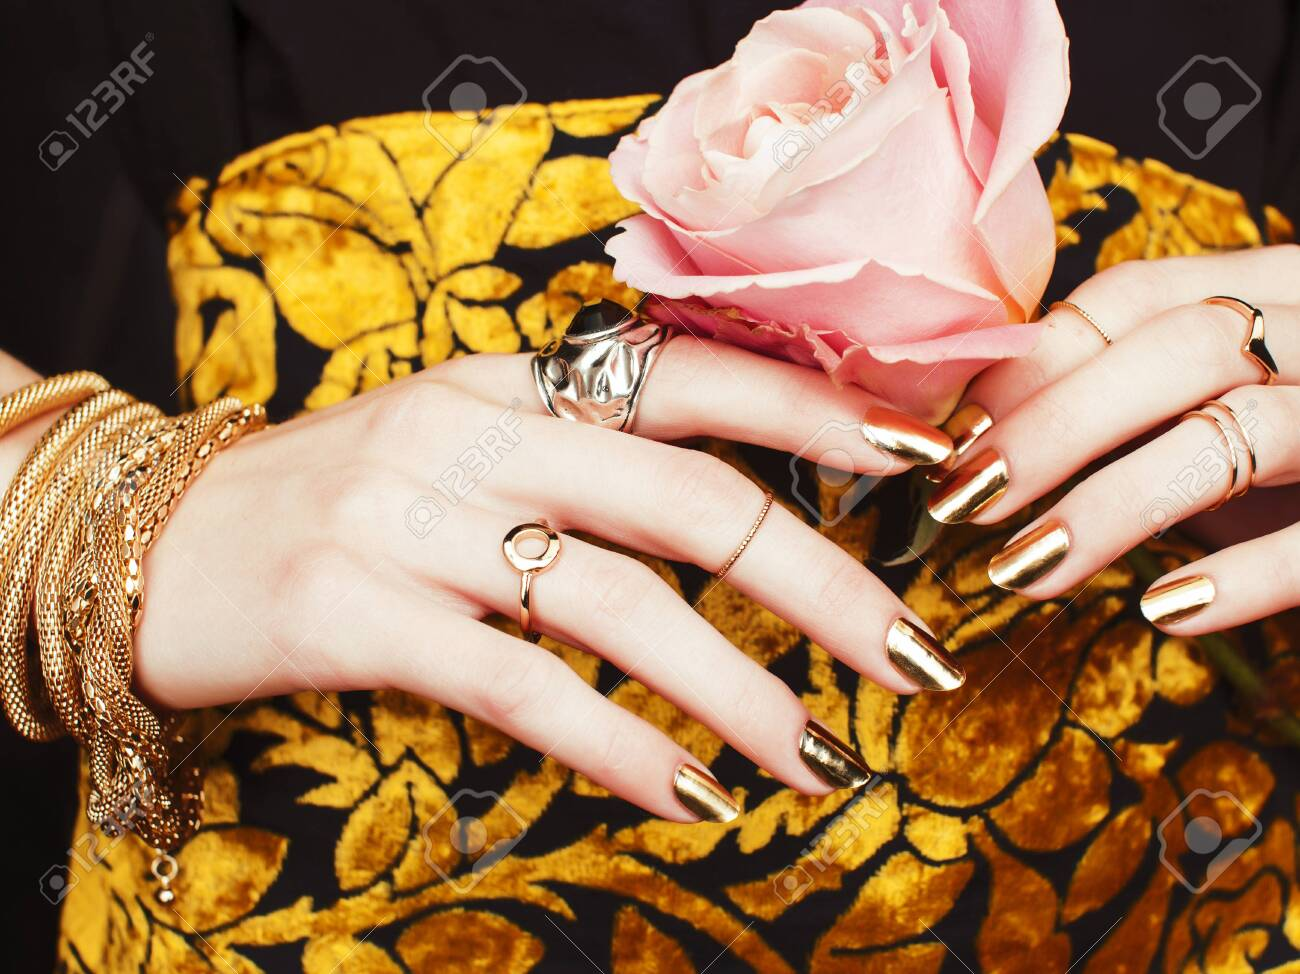 woman hands with golden manicure lot of jewelry on fancy dress close up beauty concept - 120784496